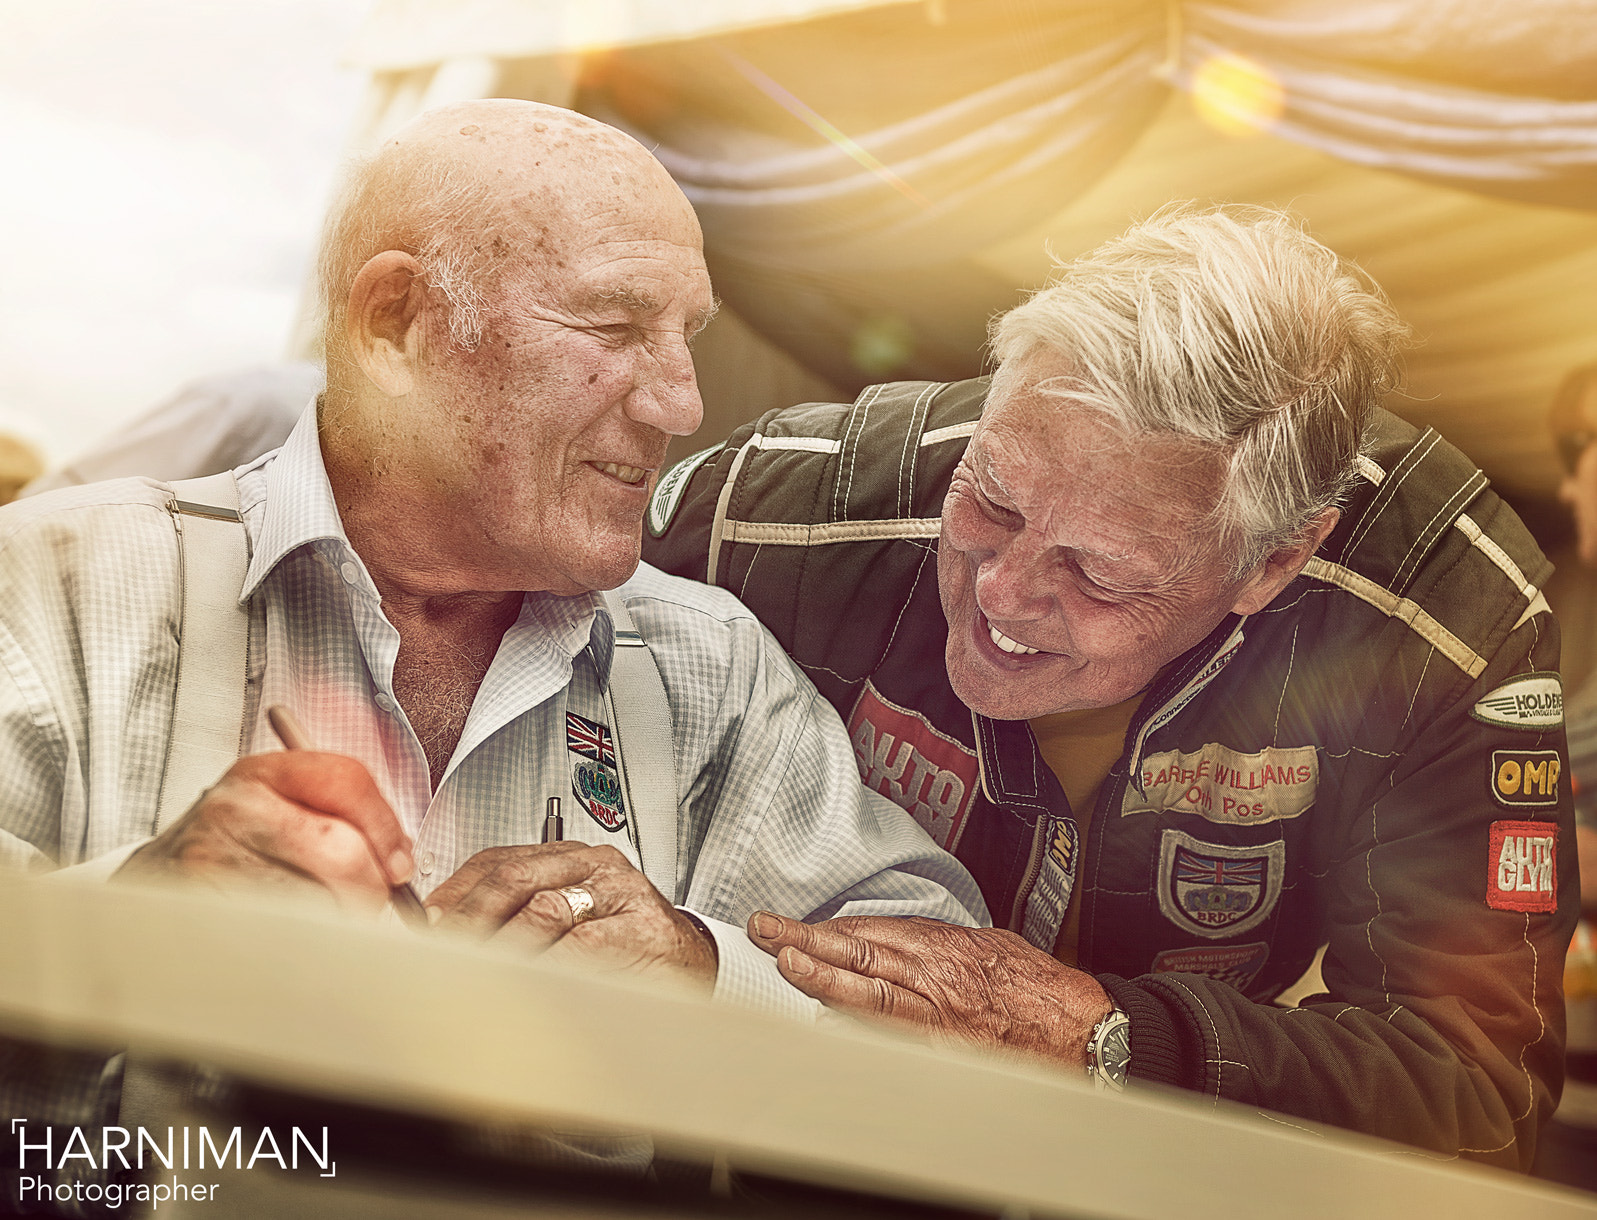 Photograph Sir Stirling Moss & Barrie Whizzo Williams by Nigel Harniman on 500px